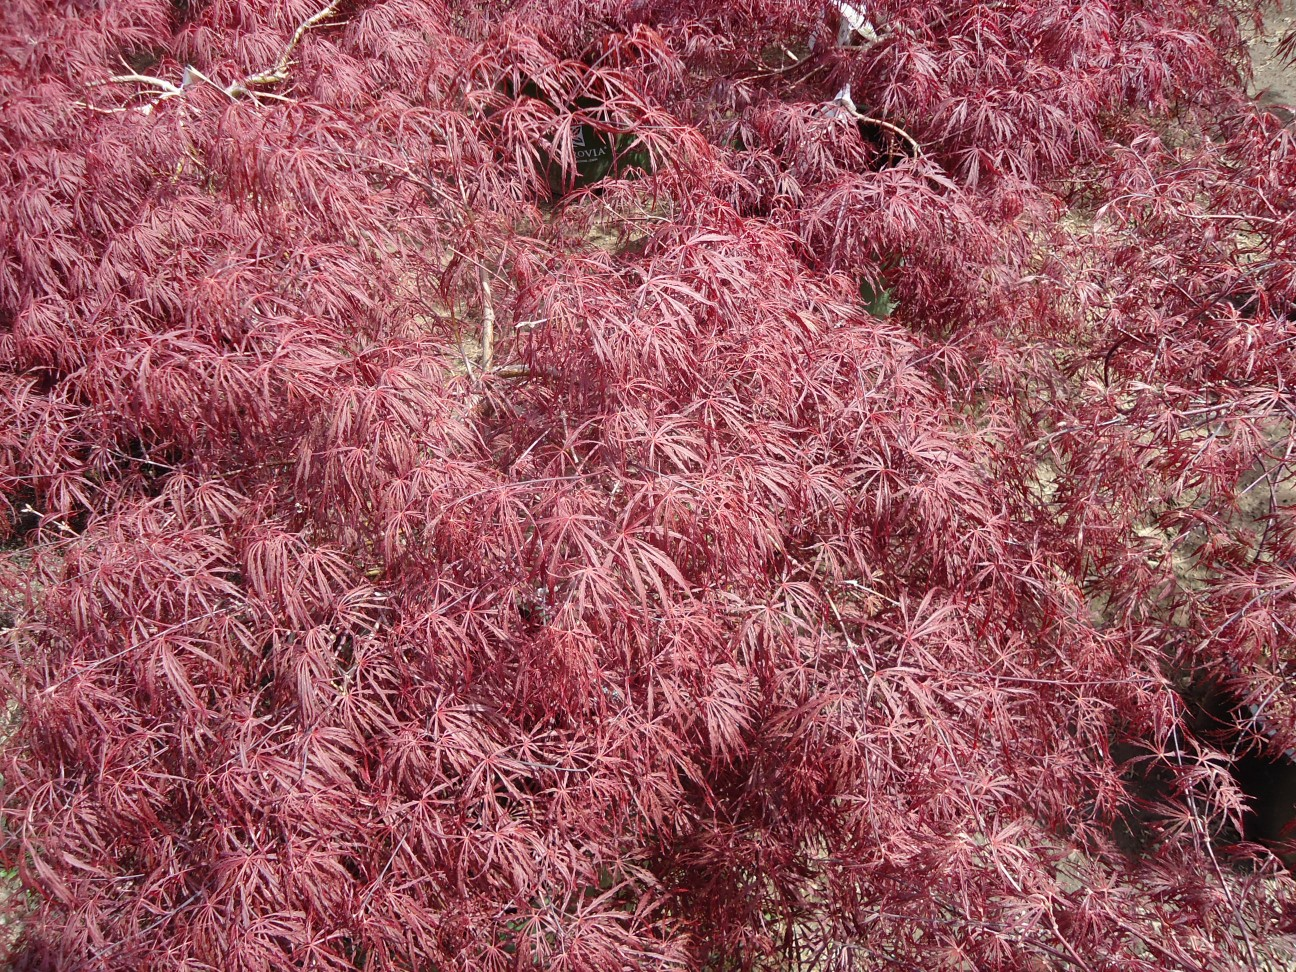 Gorgeous Crimson Queen Japanese Maple Growth Rate Crimson Queen Japanese Maple Companion Plants Nj Queen Japanese Maple Plants Growing Nj Queen Japanese Maple Plants Growing houzz 01 Crimson Queen Japanese Maple